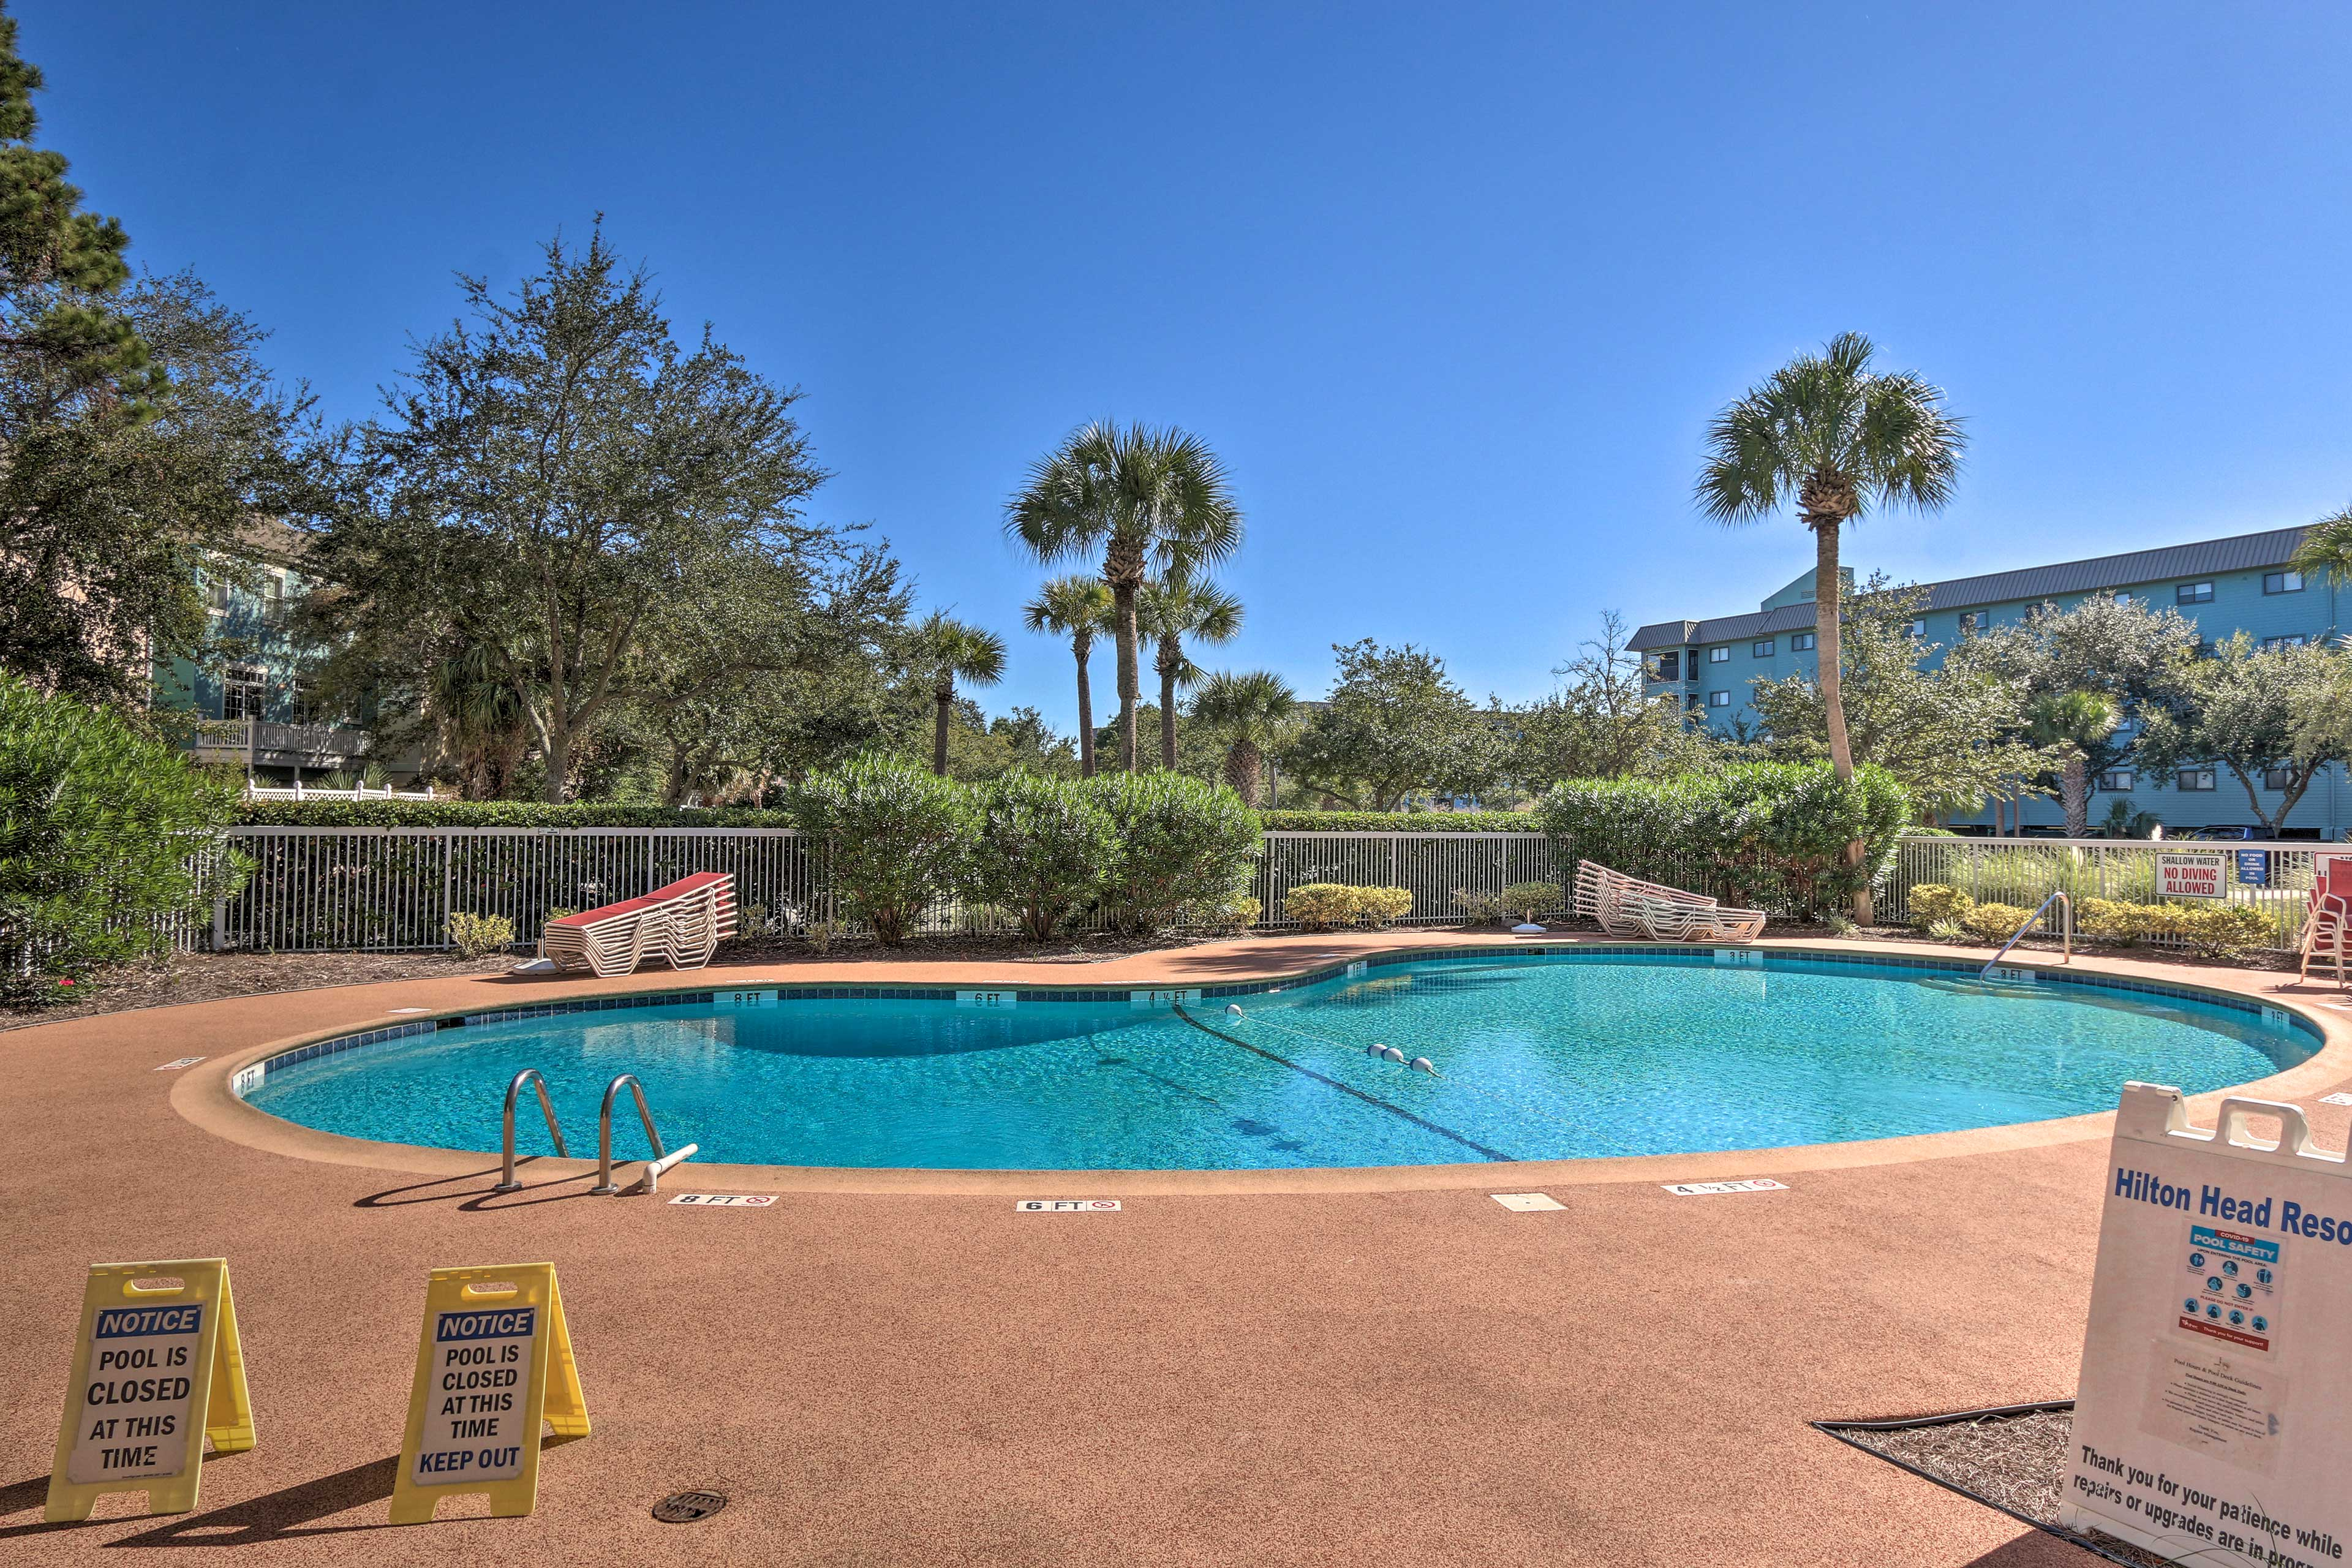 When the weather's just right, head outside to dive into the outdoor pool!